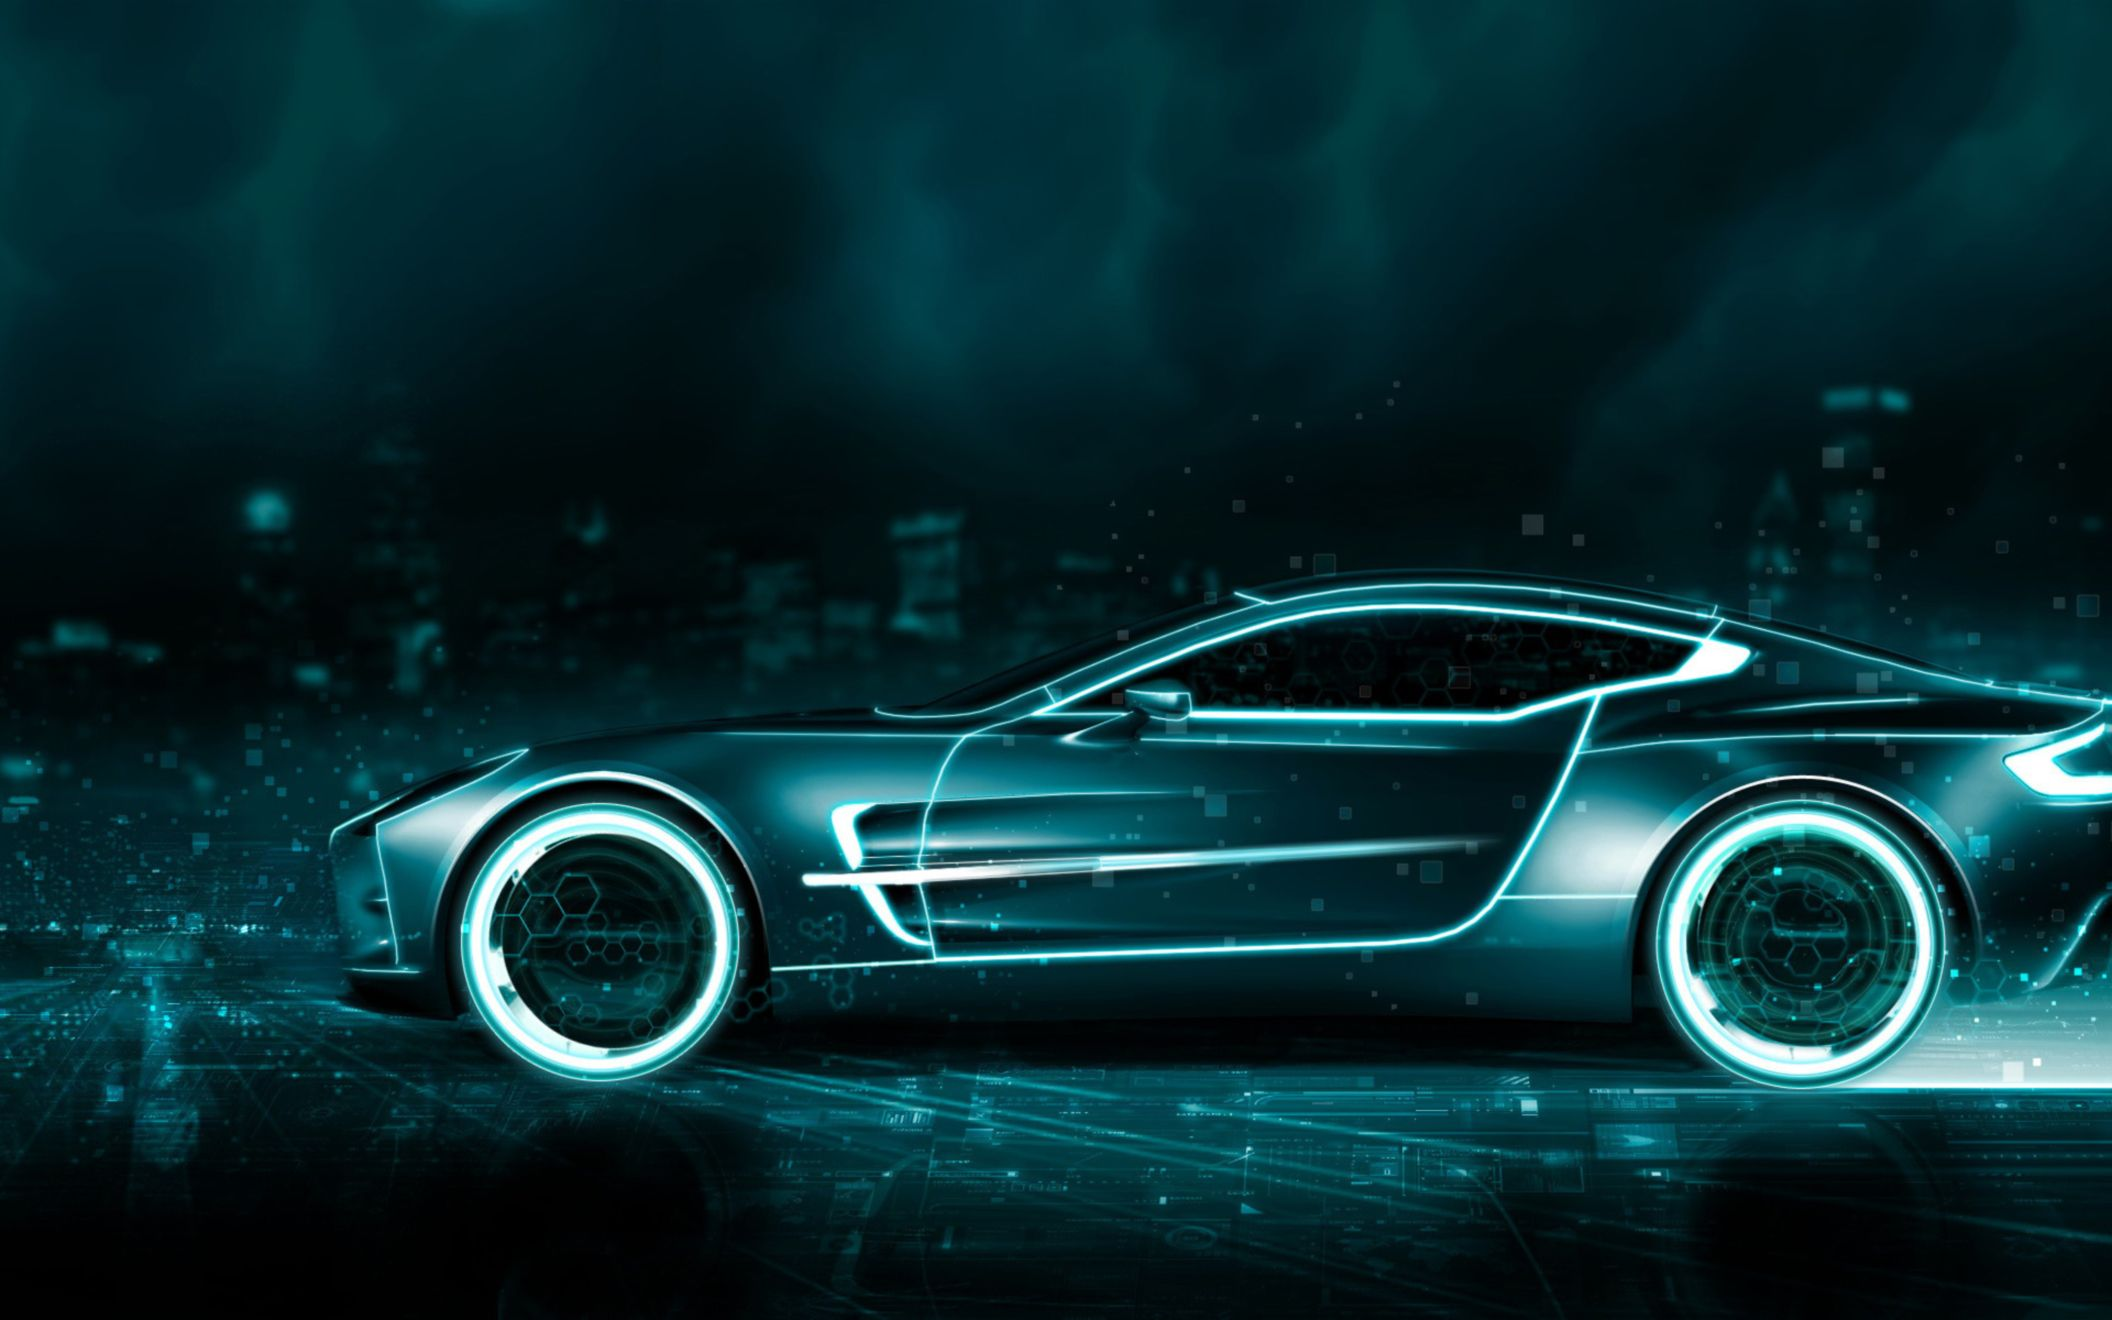 Download free HD Tron Aston Martin Wide Wallpaper, image